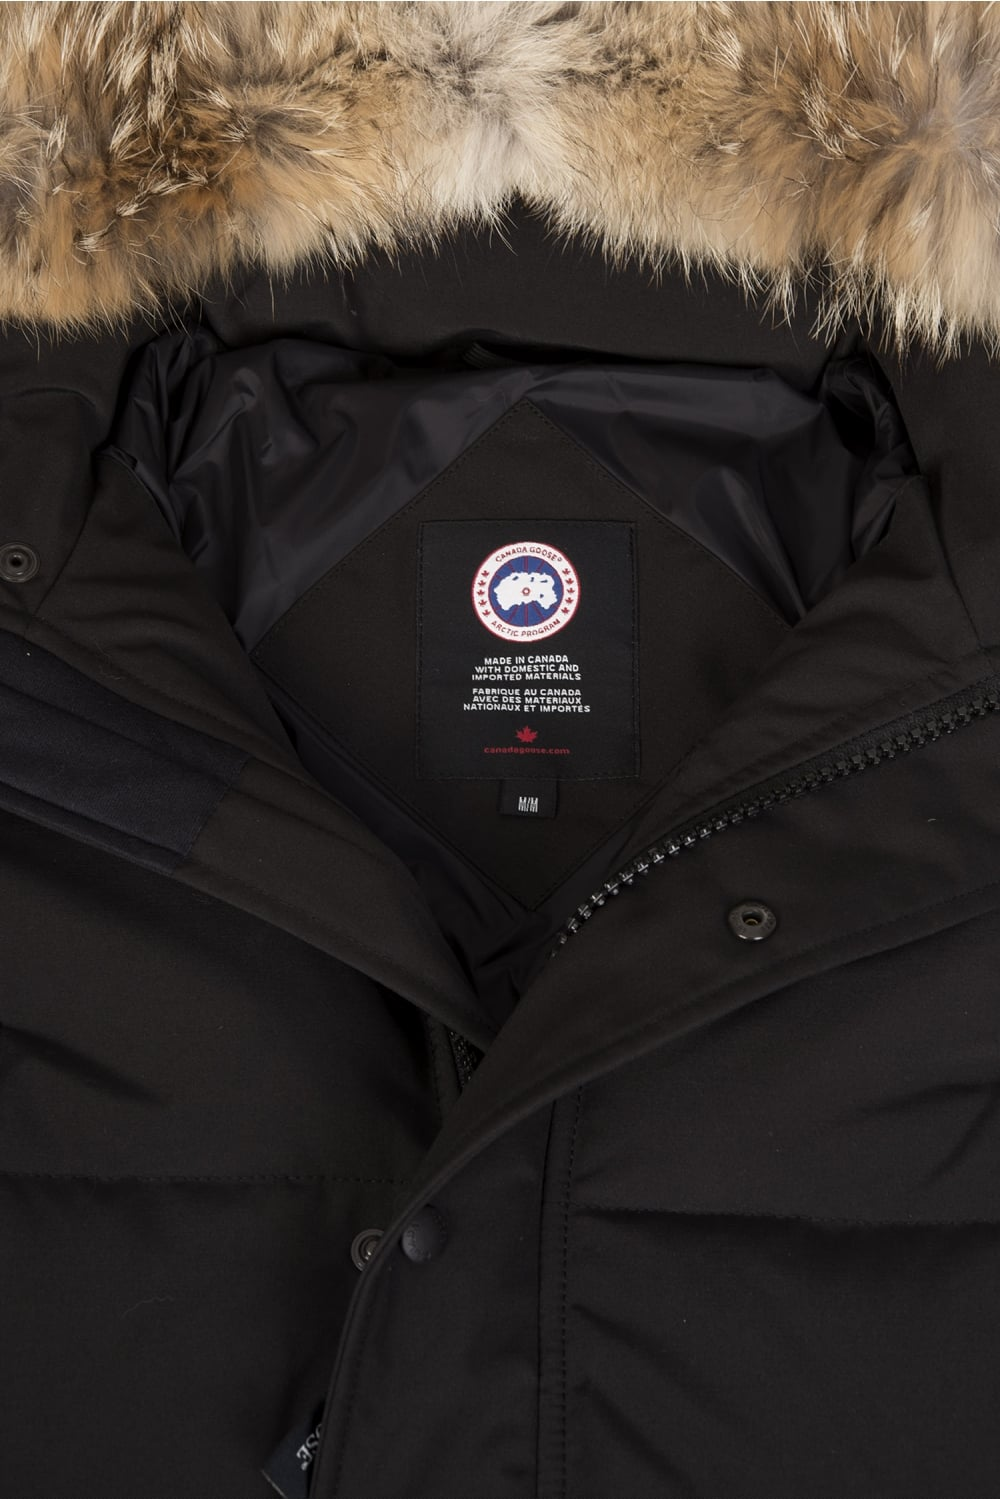 canada goose parka material